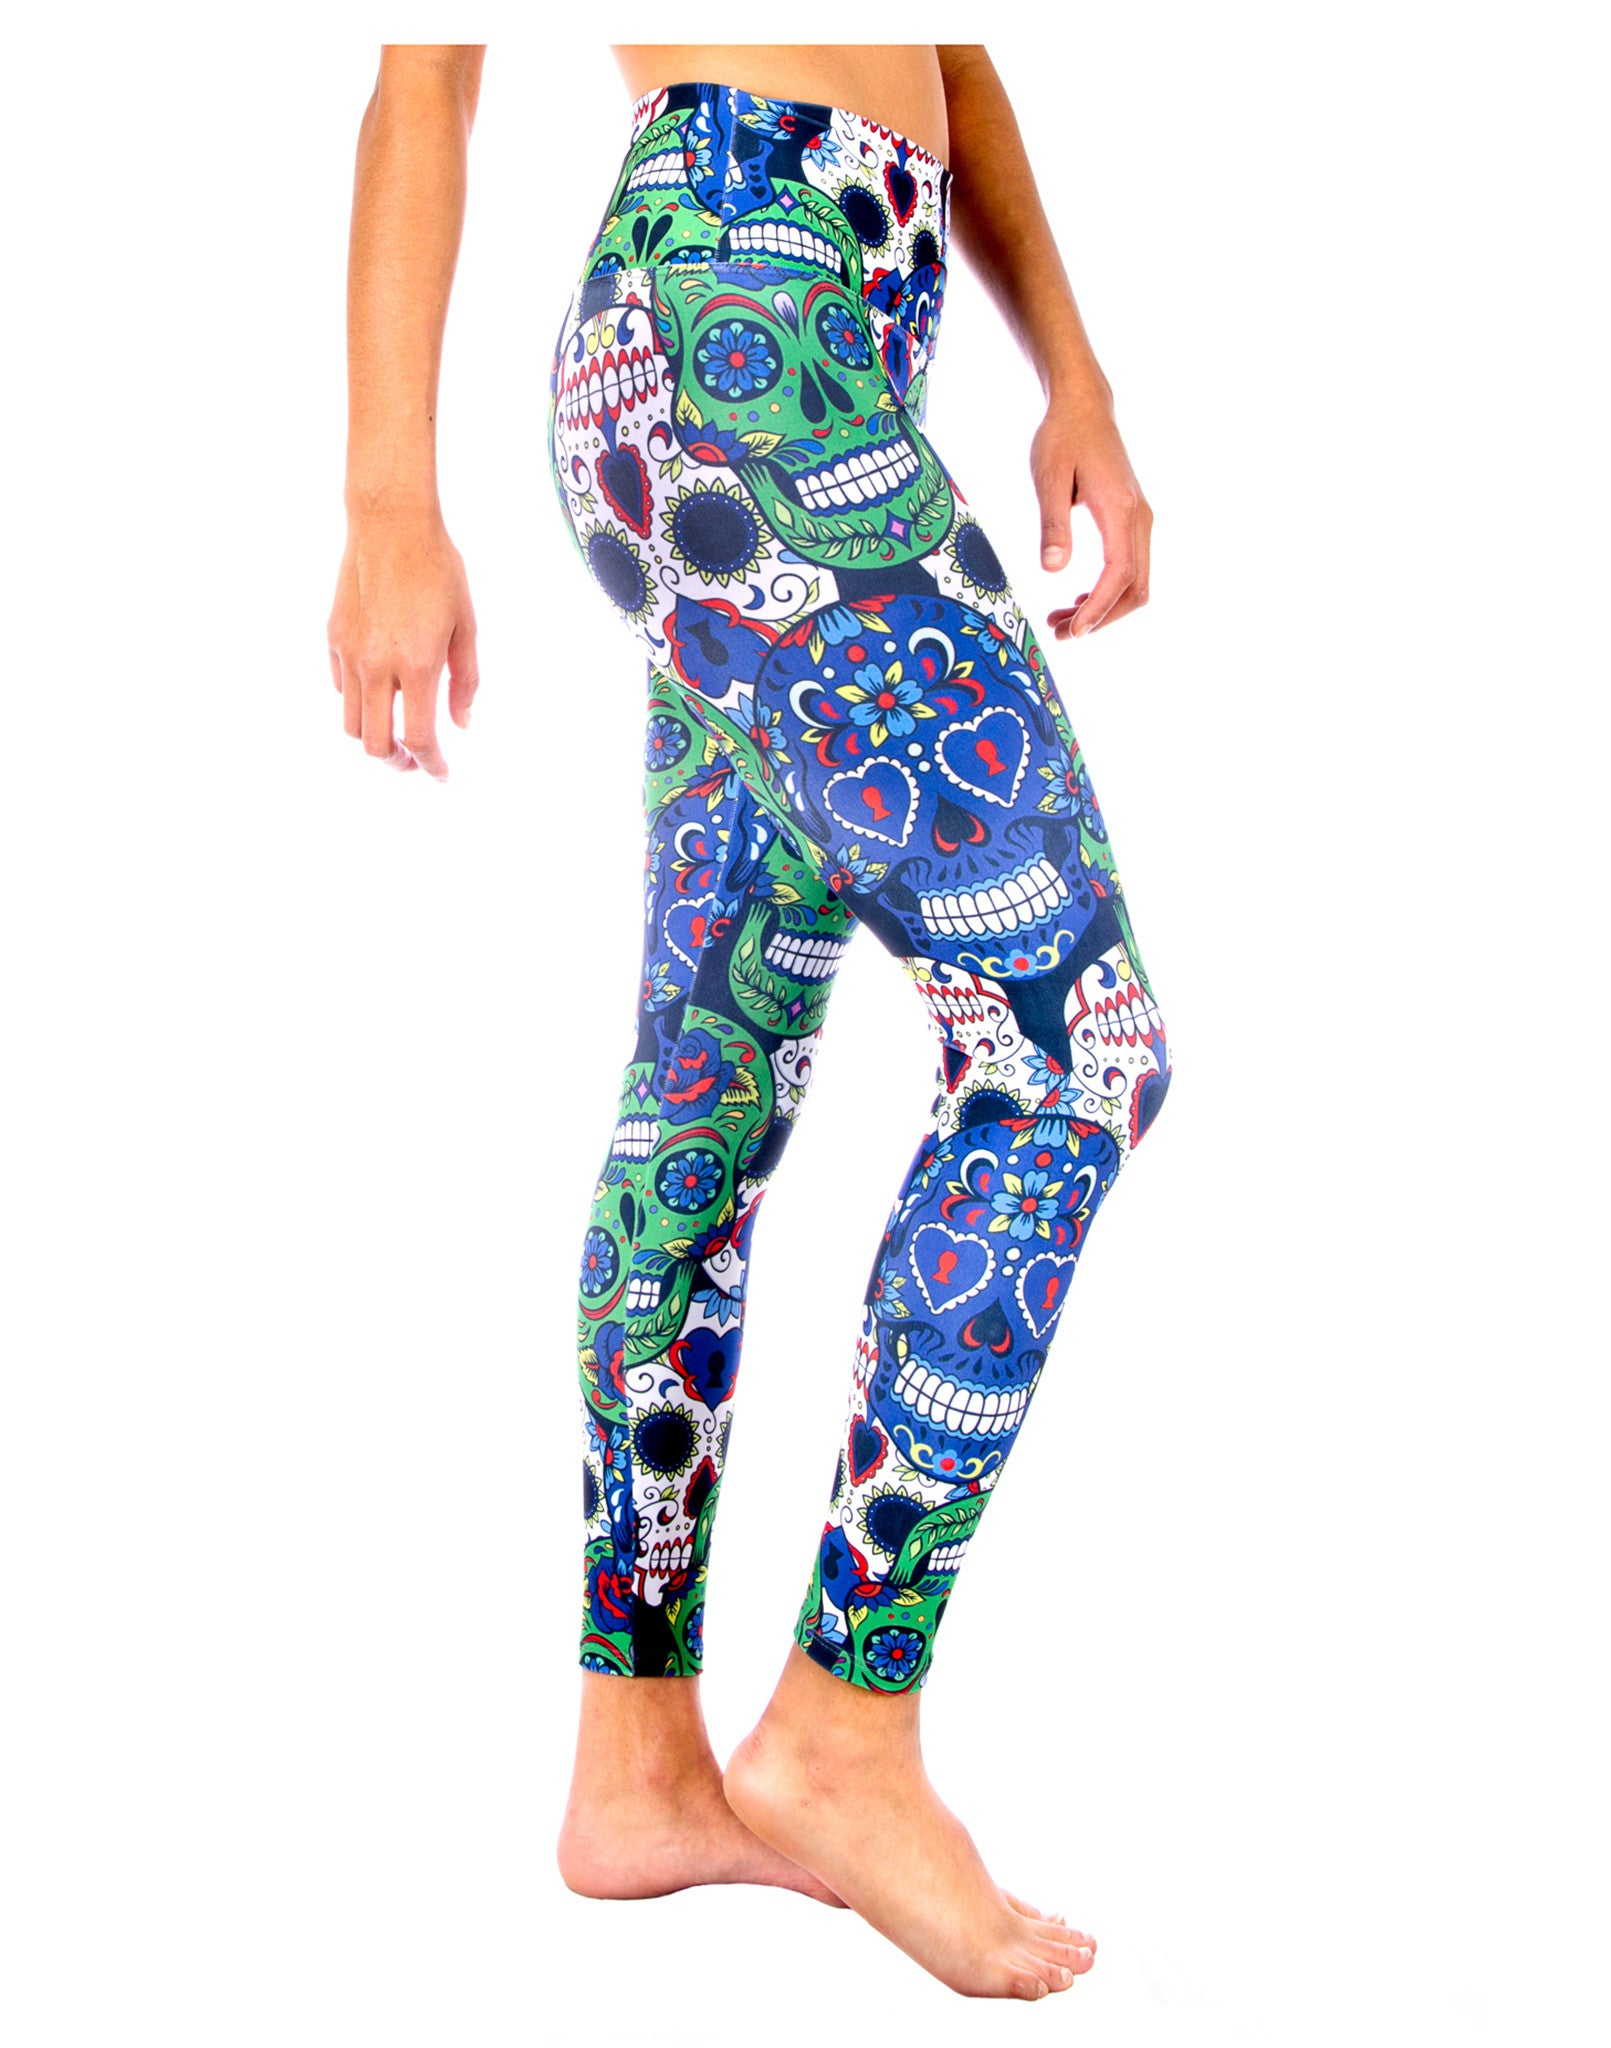 8b7c886334e Skull Yoga Pants- Cinco De Mayo Skull Legging - Skull Swag Yoga Pants  Collection by ...